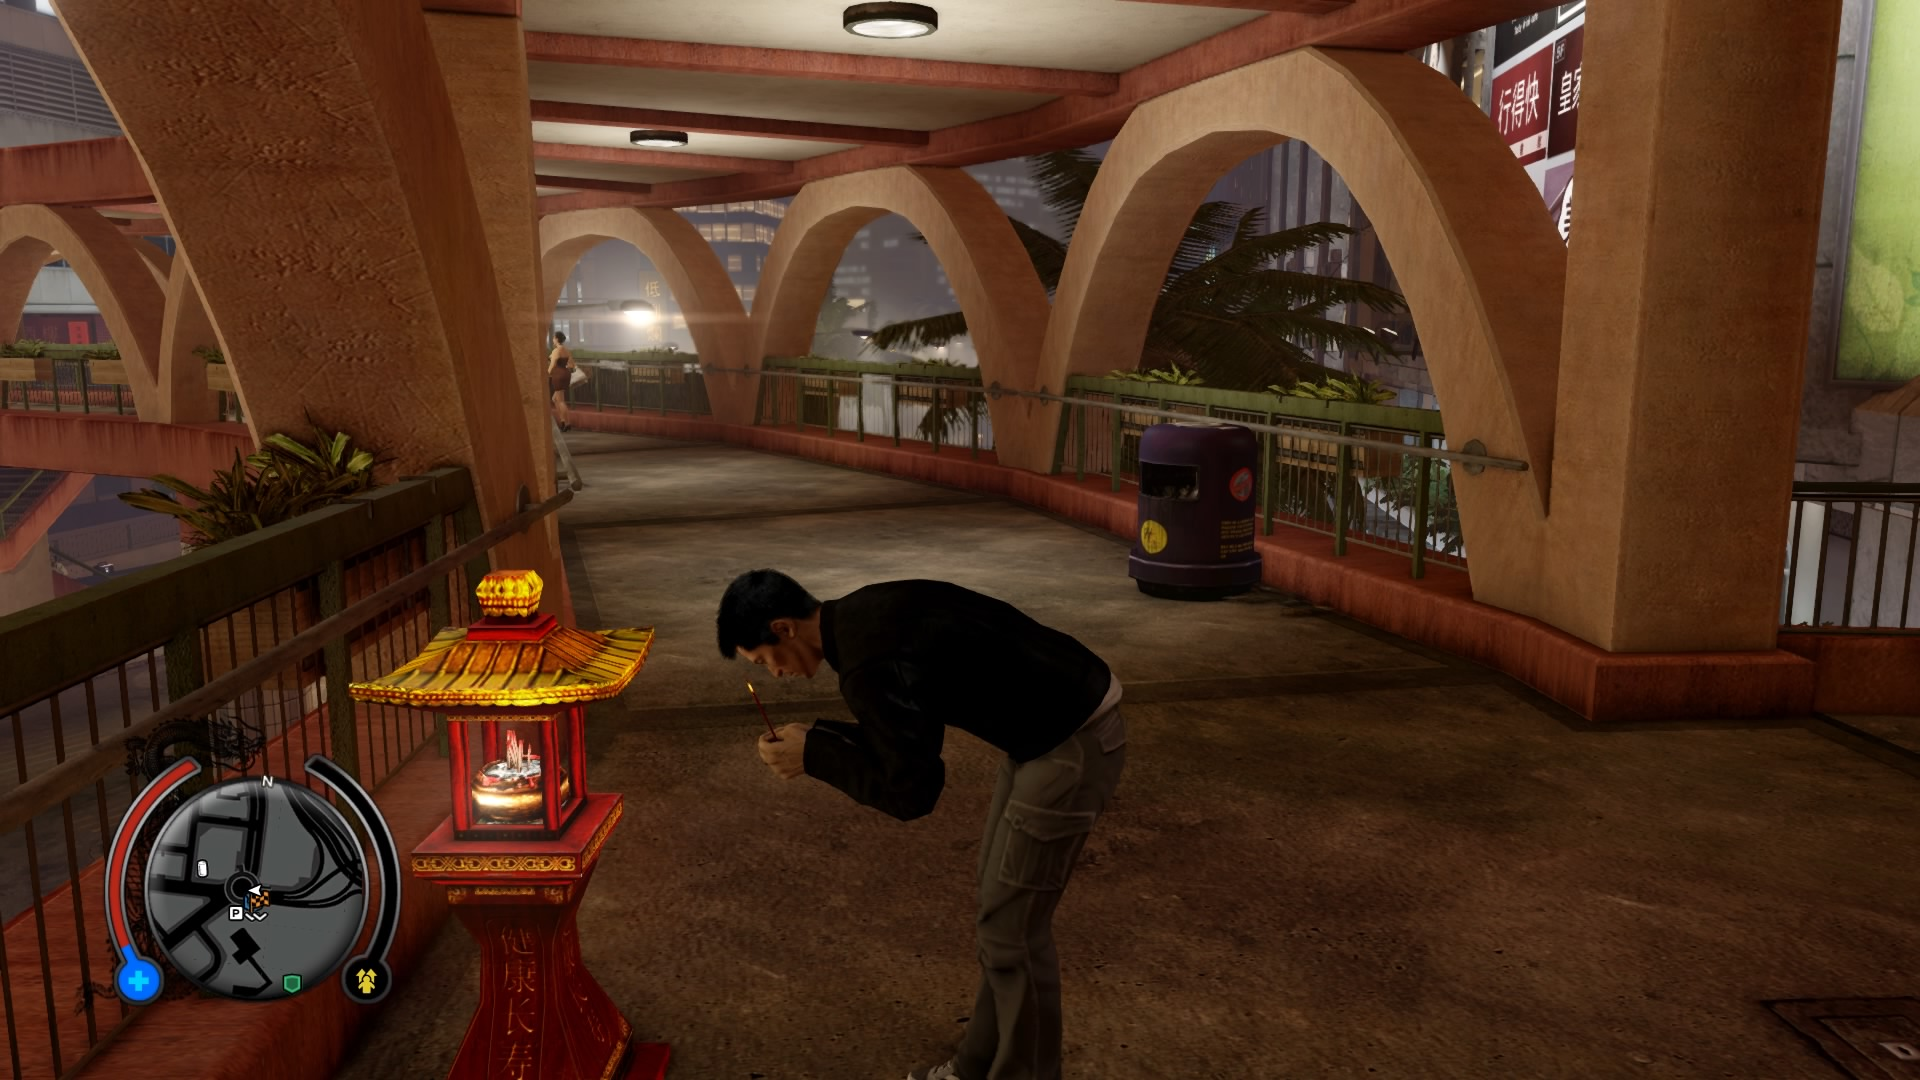 Review Sleeping Dogs Definitive Edition Ps4 Anordinaryoddball Pc The Whole Style Of Play Also Sets This Game Apart From Gta Where Has A Lot Gunplay Is More Focused On Hand To Combat